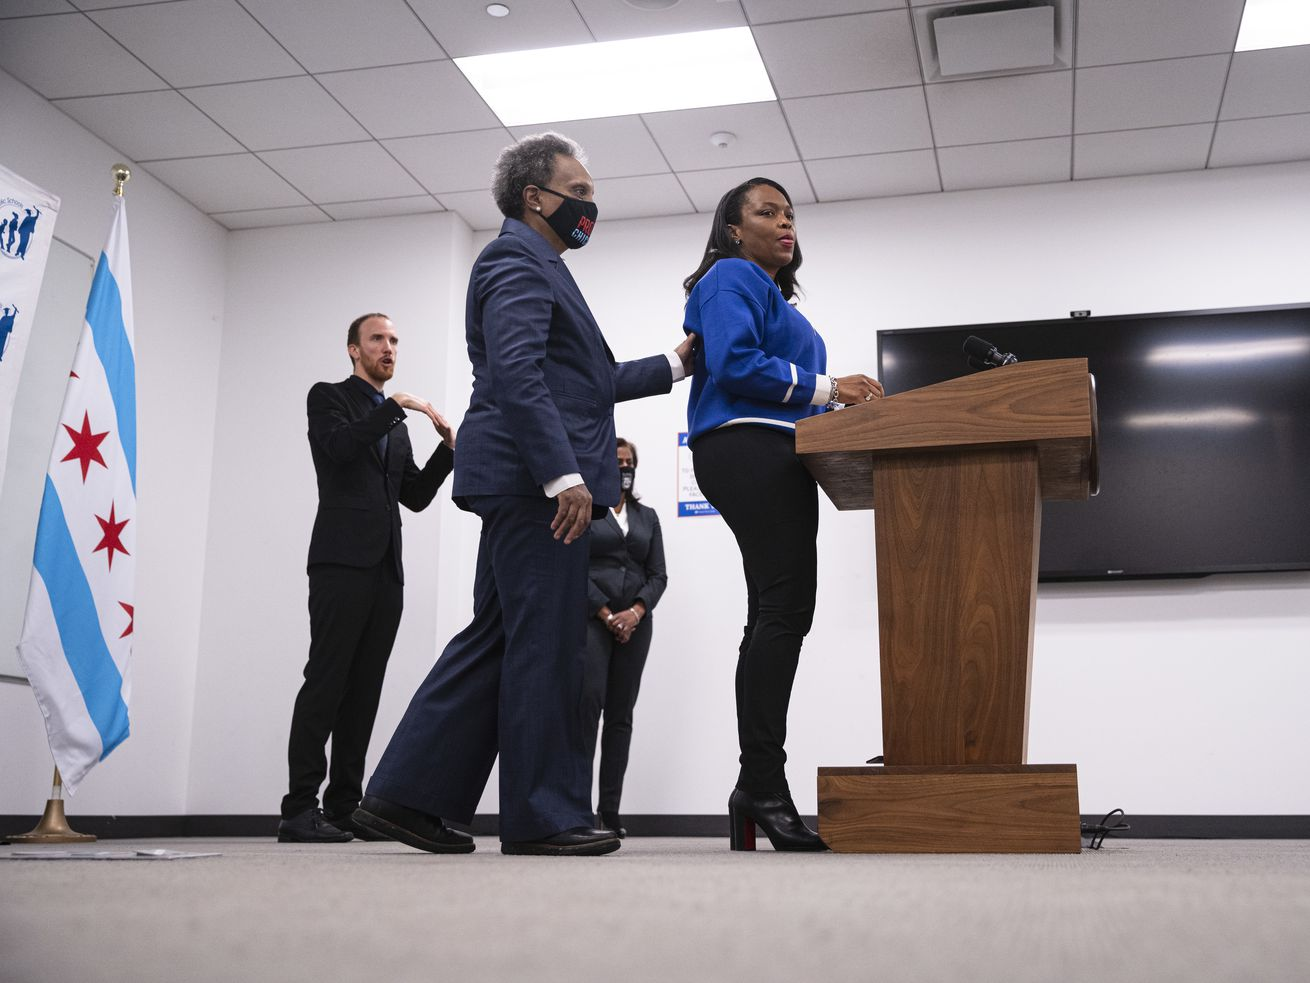 Mayor Lori Lightfoot approaches the lectern to answer a question during a press conference earlier this week to address the ongoing dispute between the Chicago Teachers Union and CPS over whether schools are safe enough to reopen.